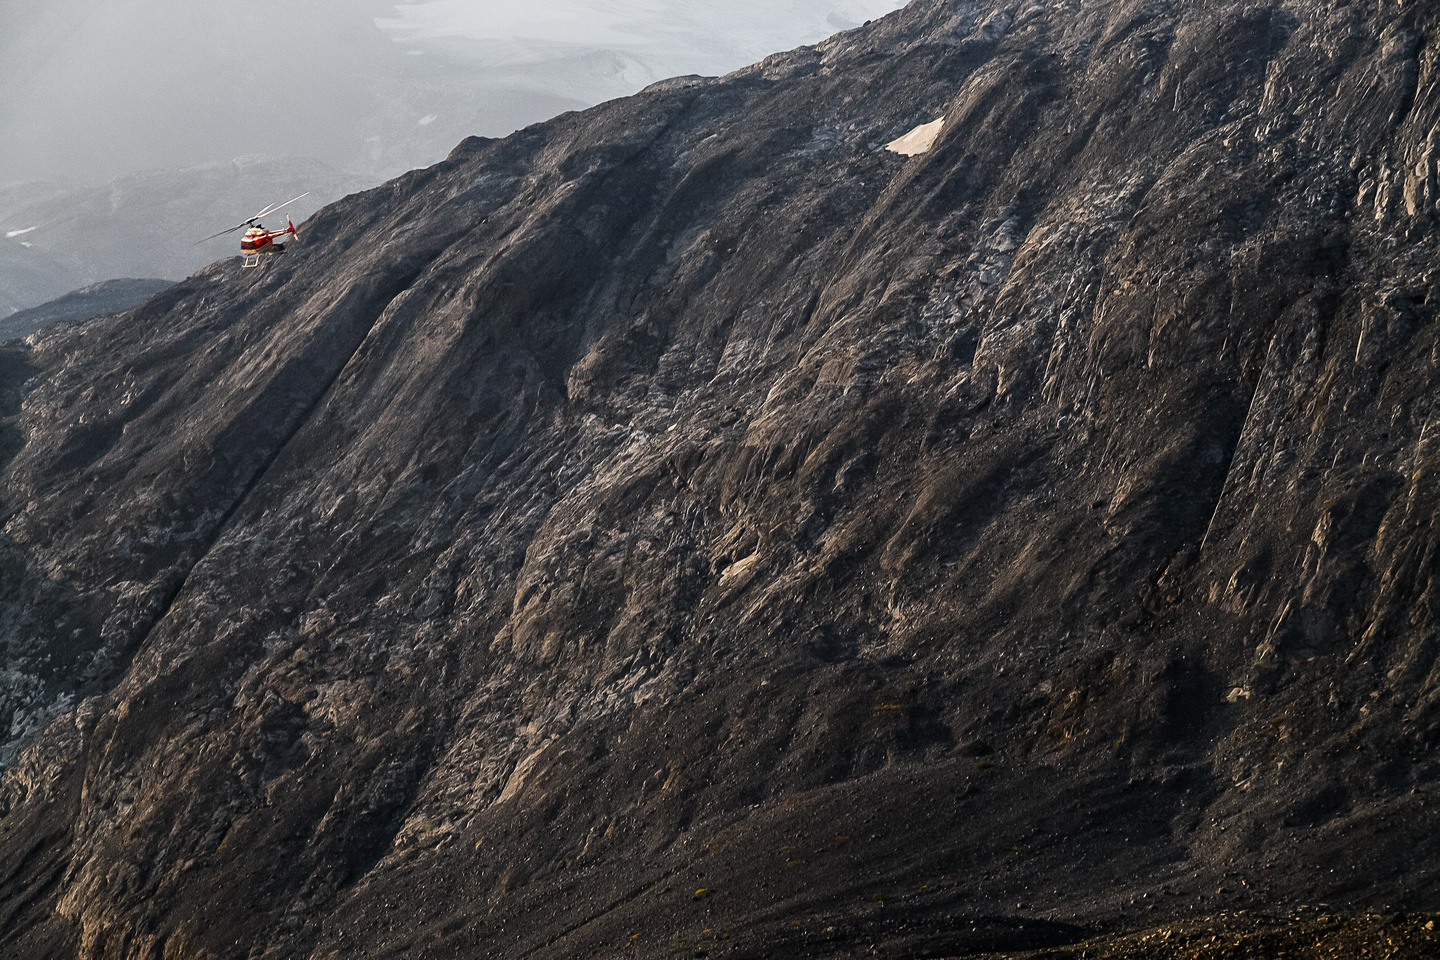 The chopper flies past Warrior's north face.